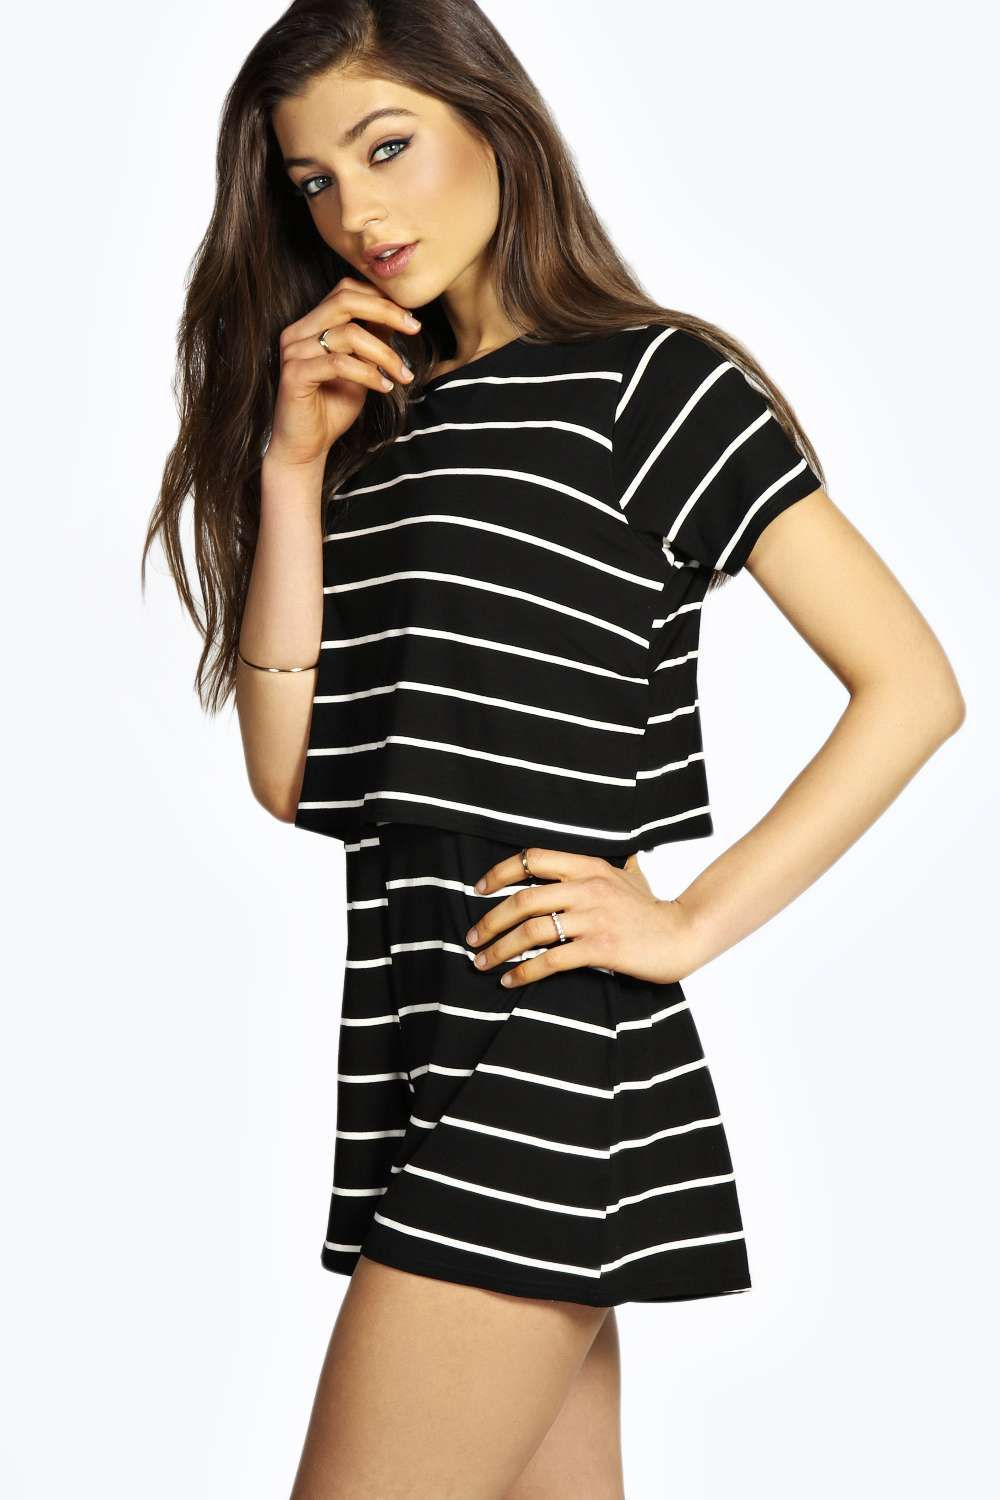 e55ed1347a Christa Striped Tshirt Style Casual Playsuit alternative image ...